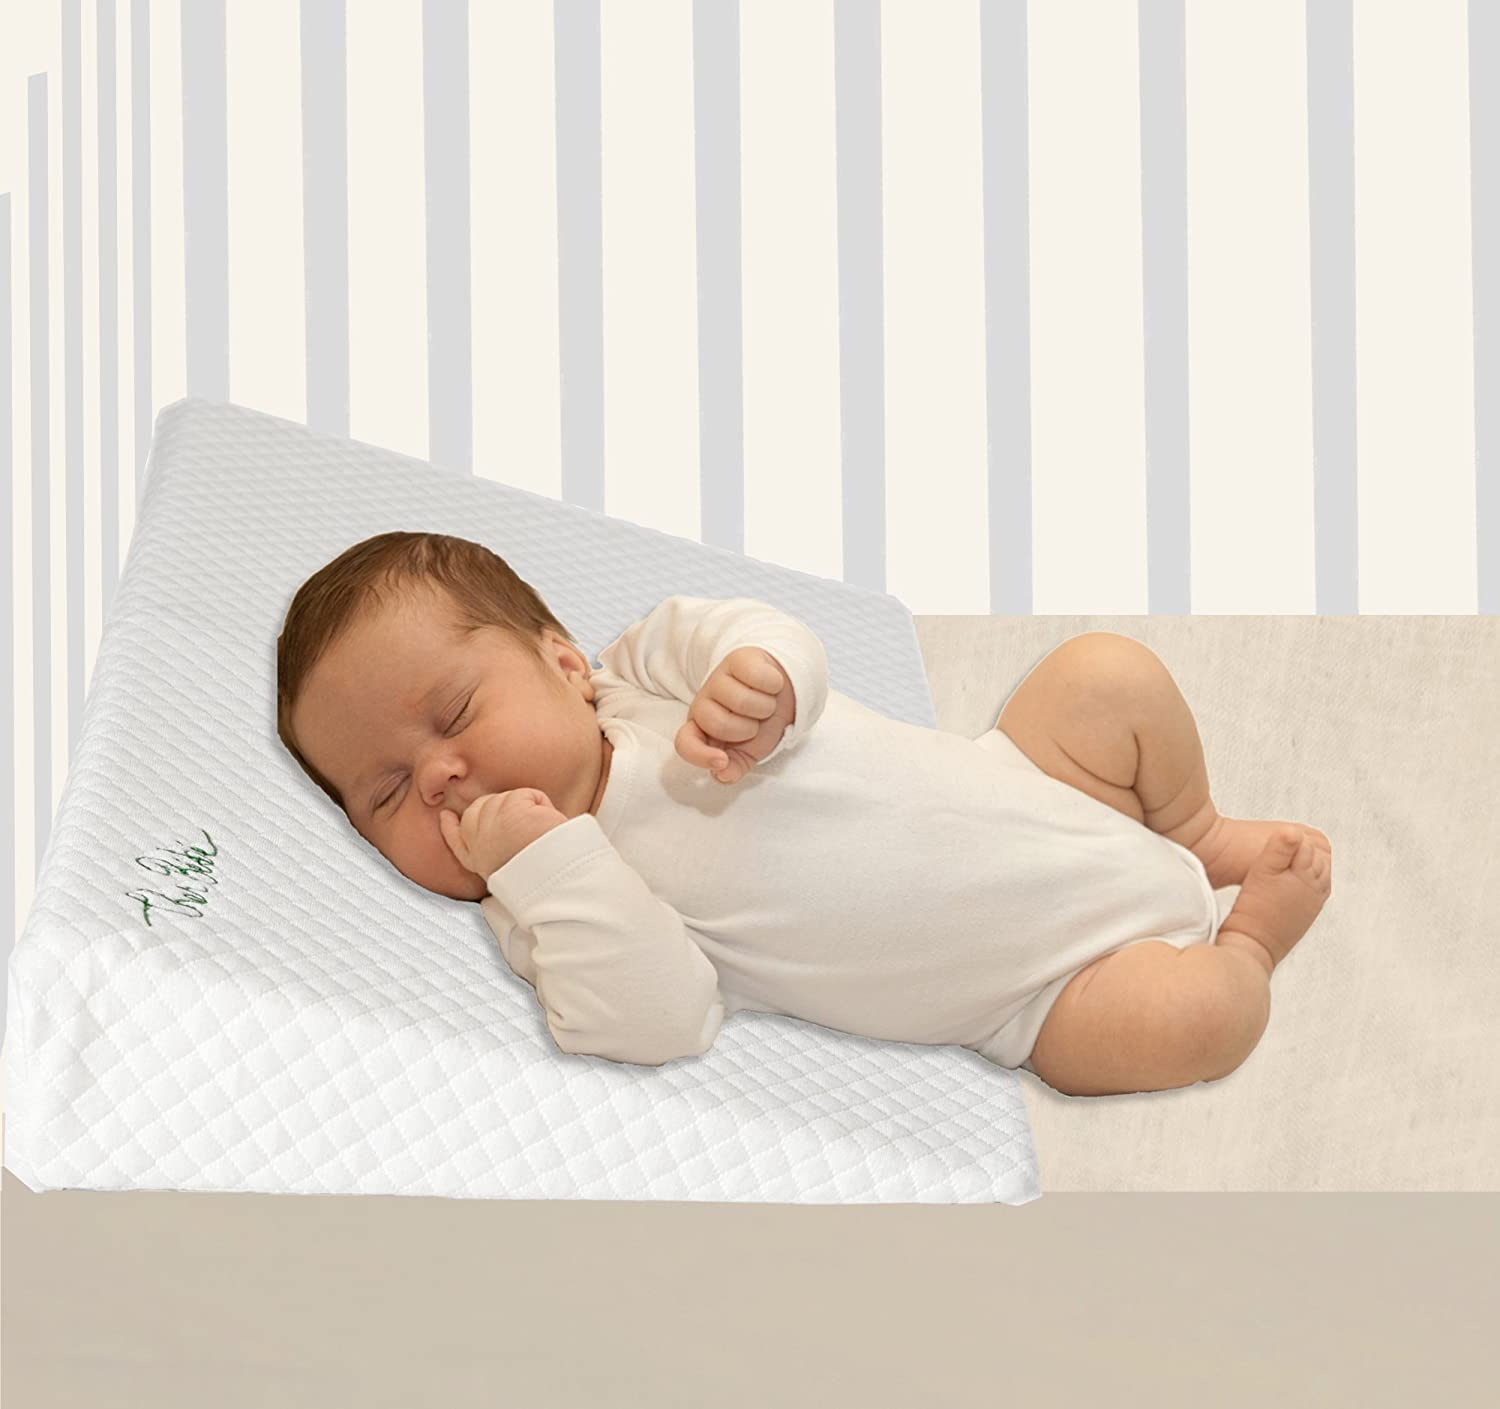 Baby Sleep Positioner for Over or Under The Mattress Cotton /& Waterproof Covers Cher B/Ã/ƒ/Â/©b/Ã/ƒ/Â/© Cher B/Ã/ƒb/Ã/ƒ Crib Wedge for Reflux /& Colic Newborns Slee High Incline and Foldable